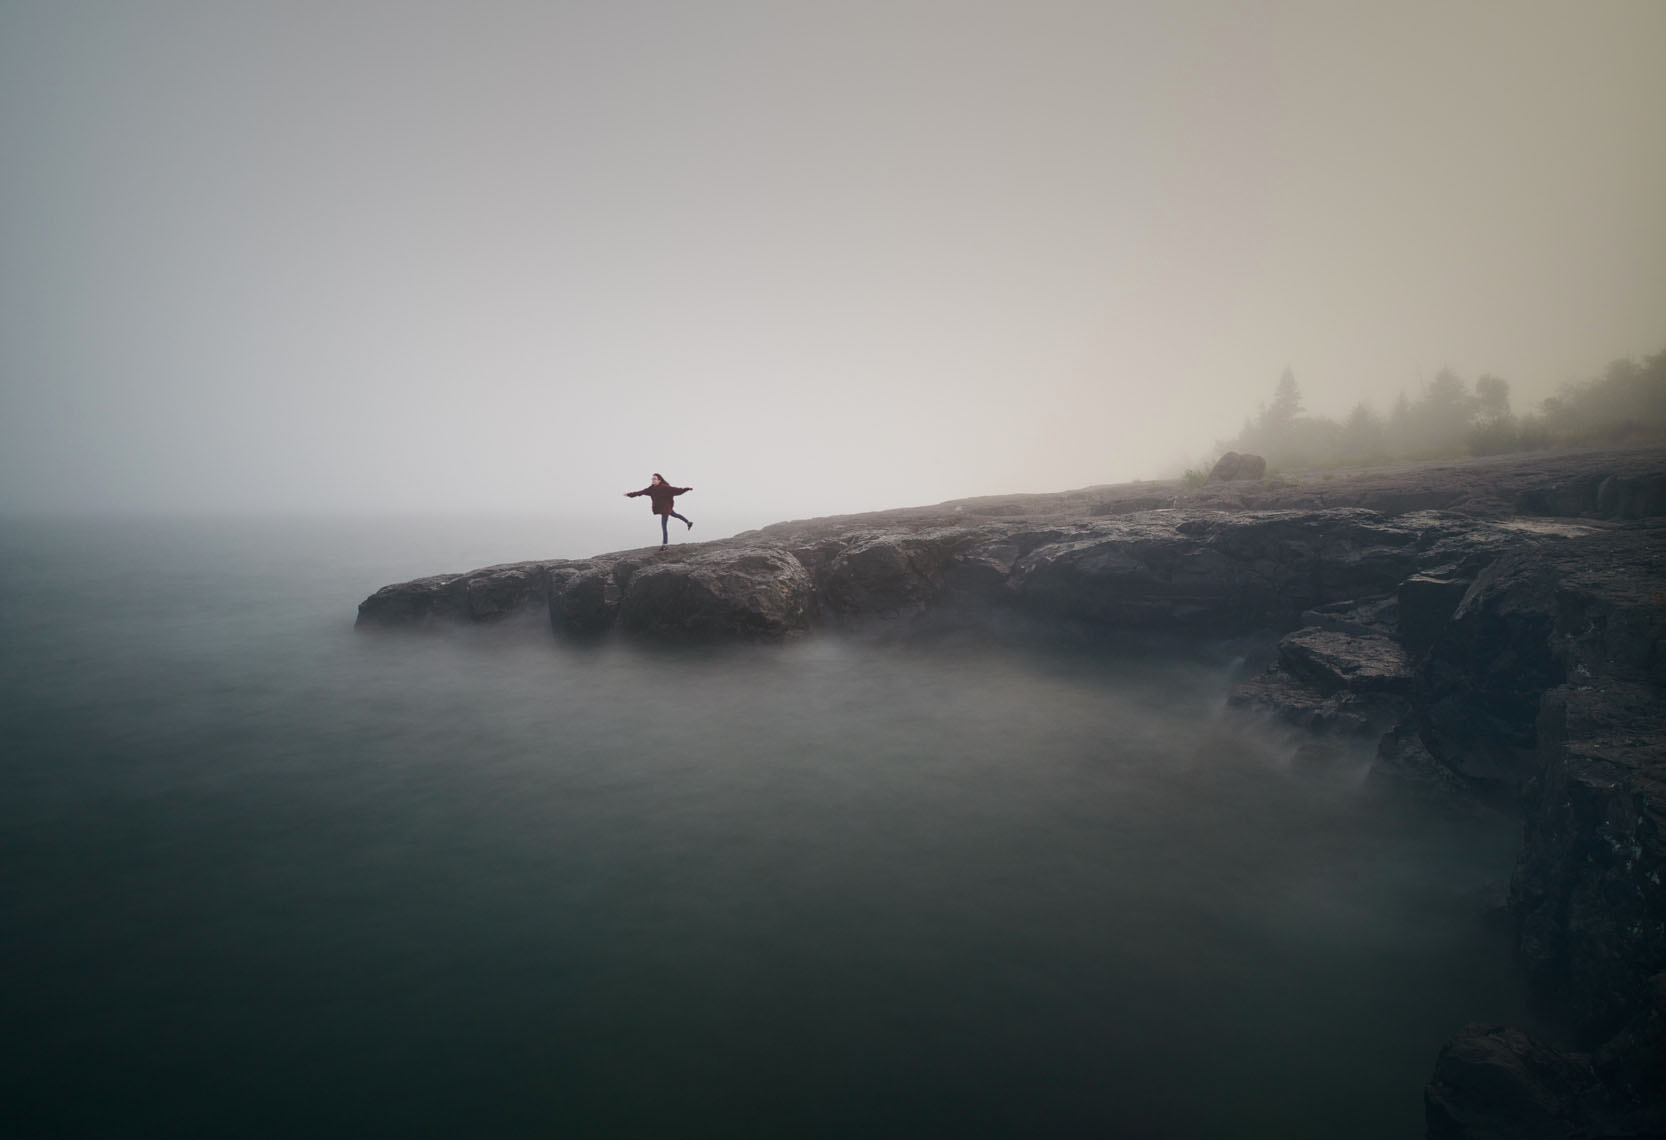 Yoga practice on Lake Superior landscape